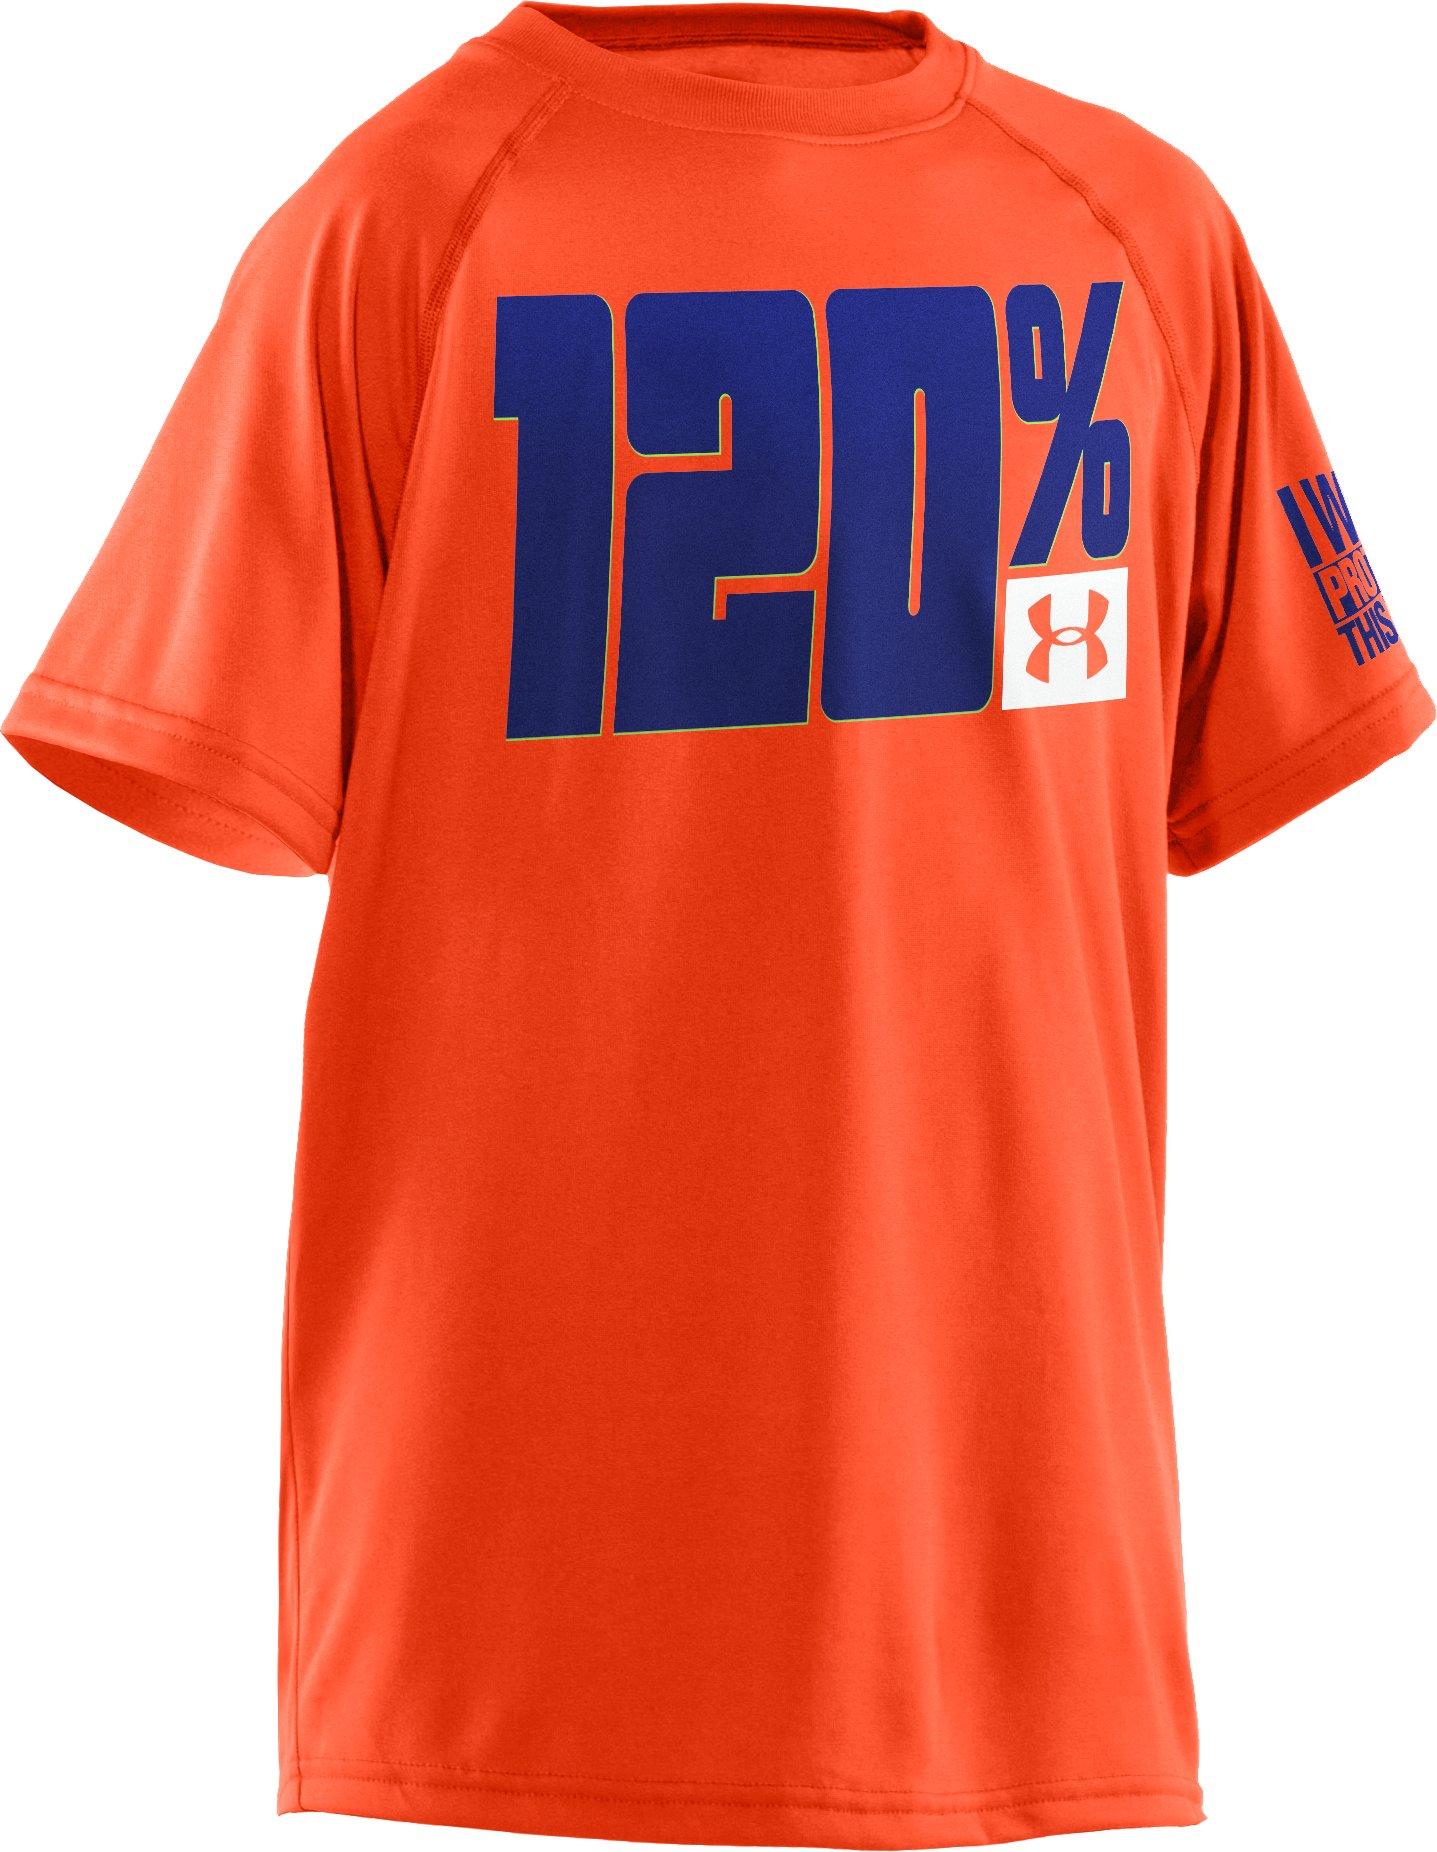 Boys' UA 120% T-Shirt, Toxic, undefined